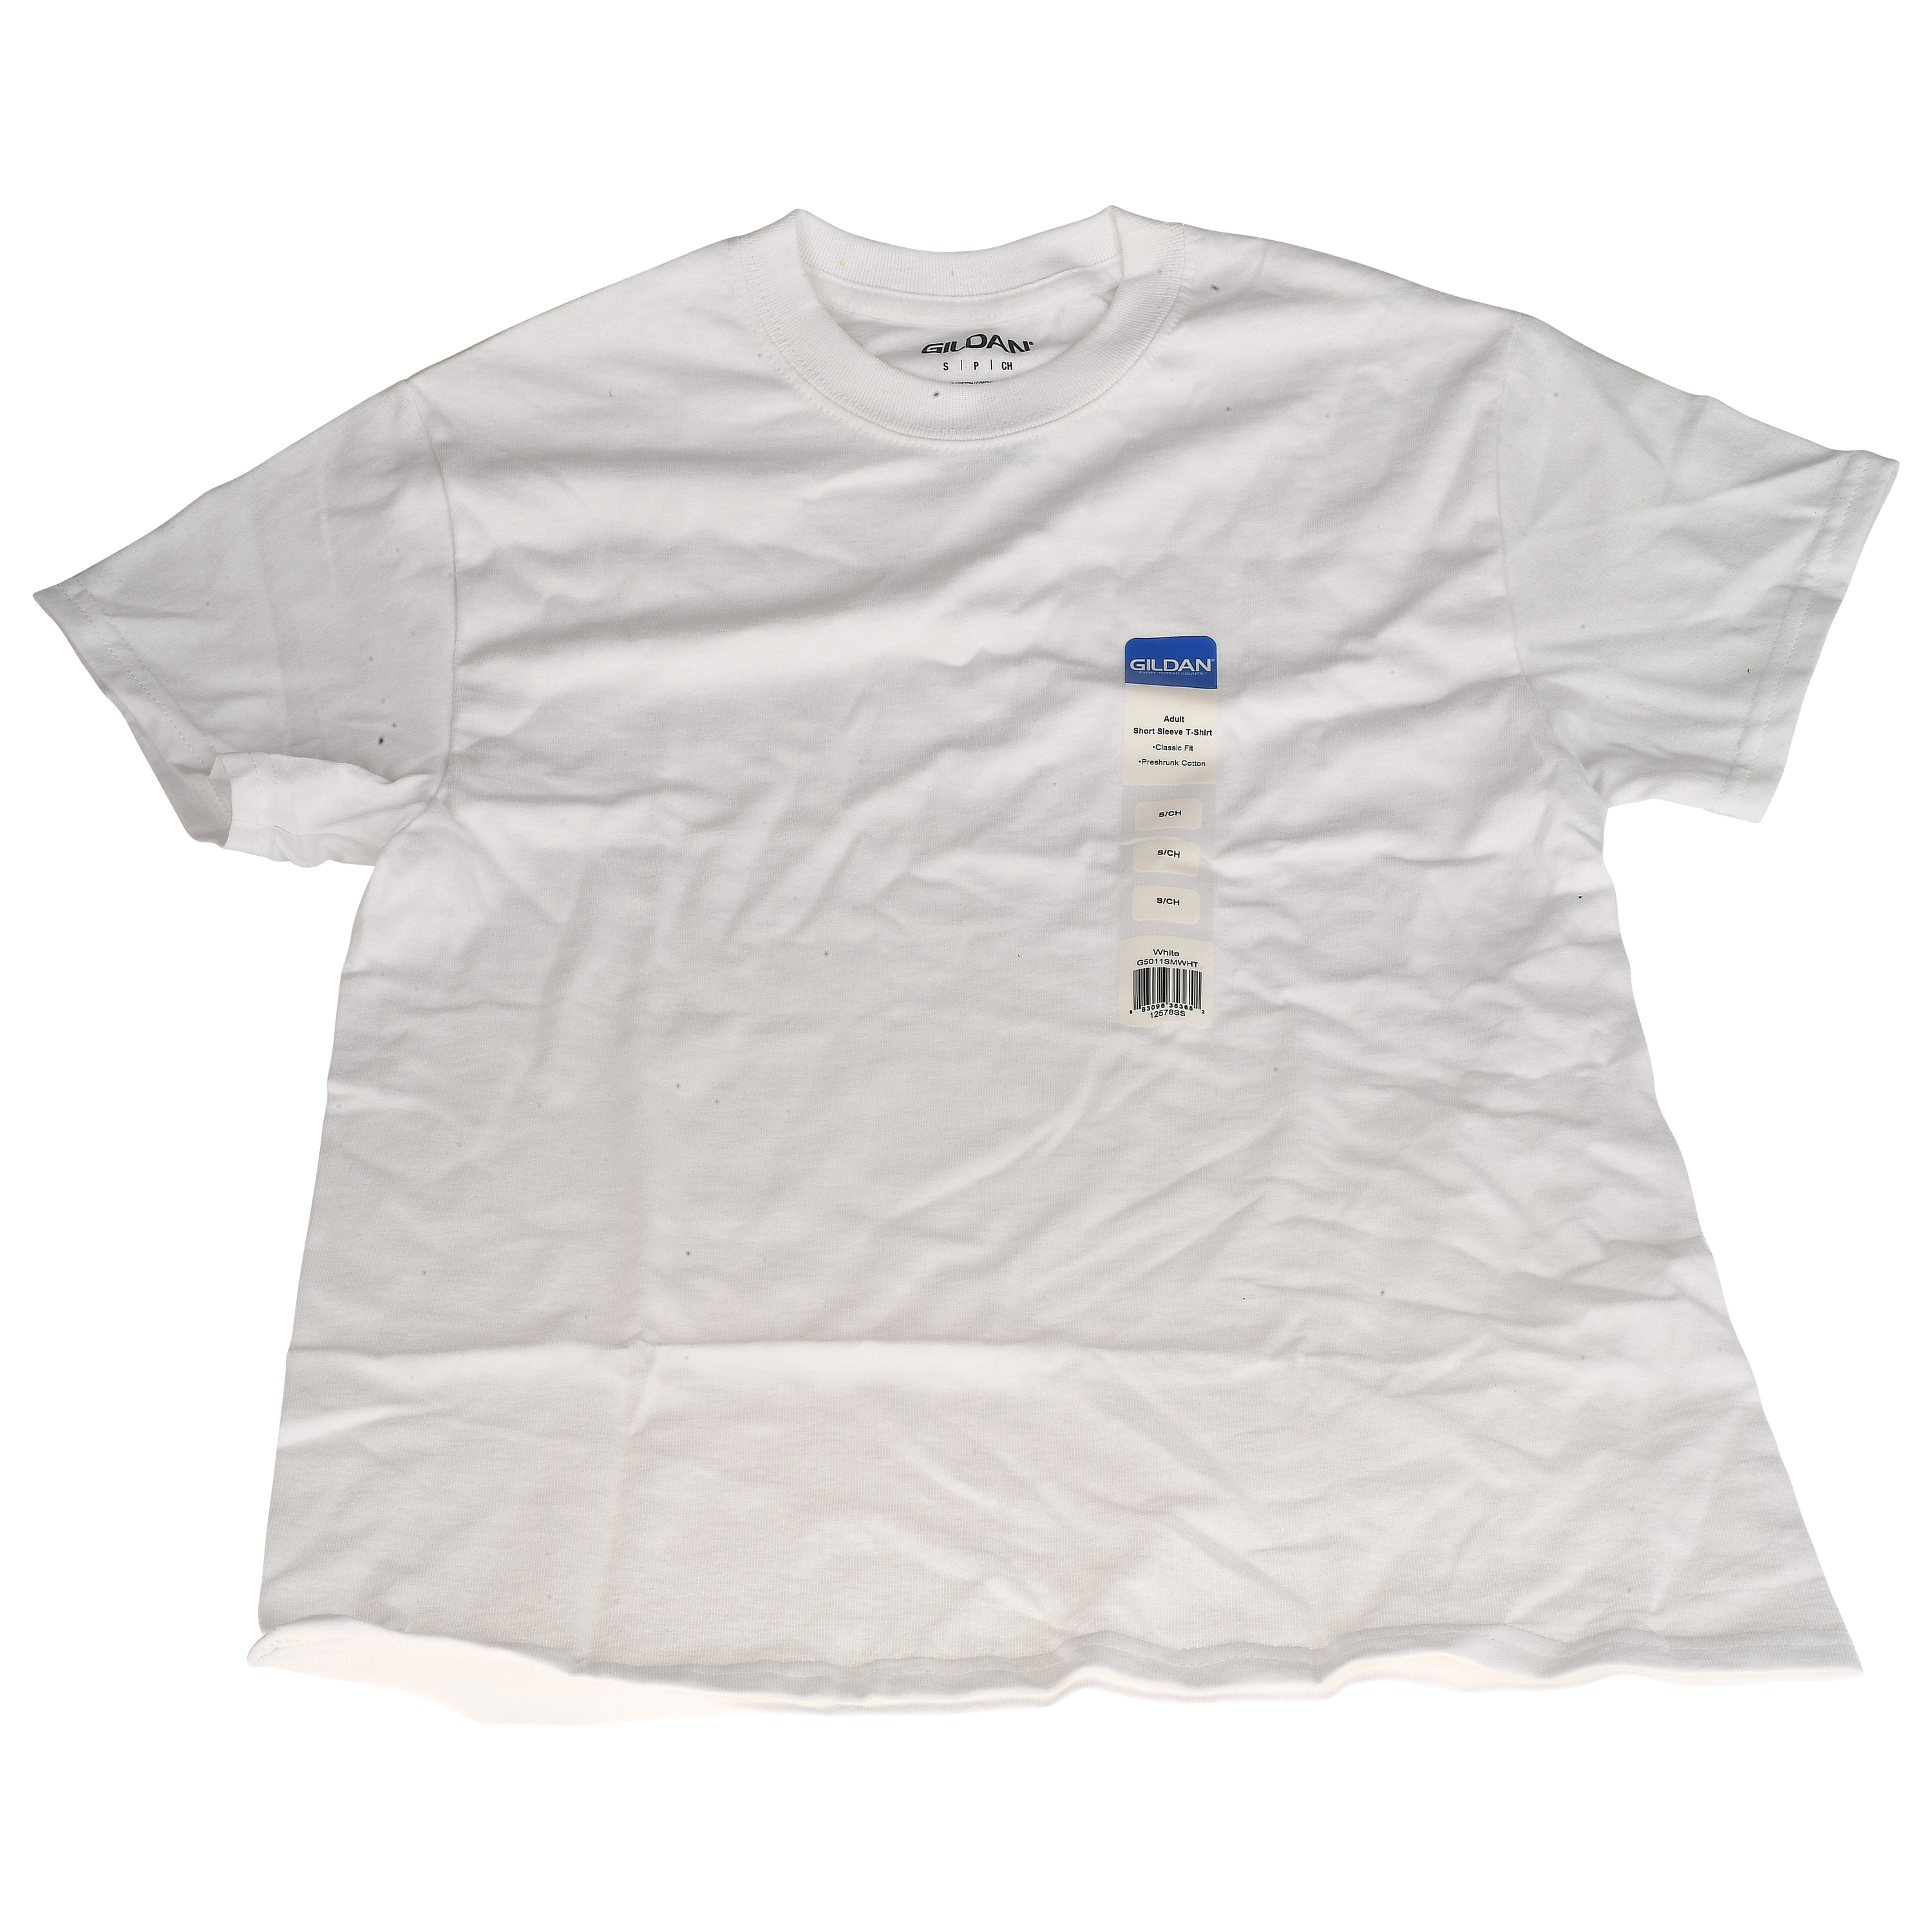 Gildan Small White Adult Short Sleeve T-Shirt, 1 Each